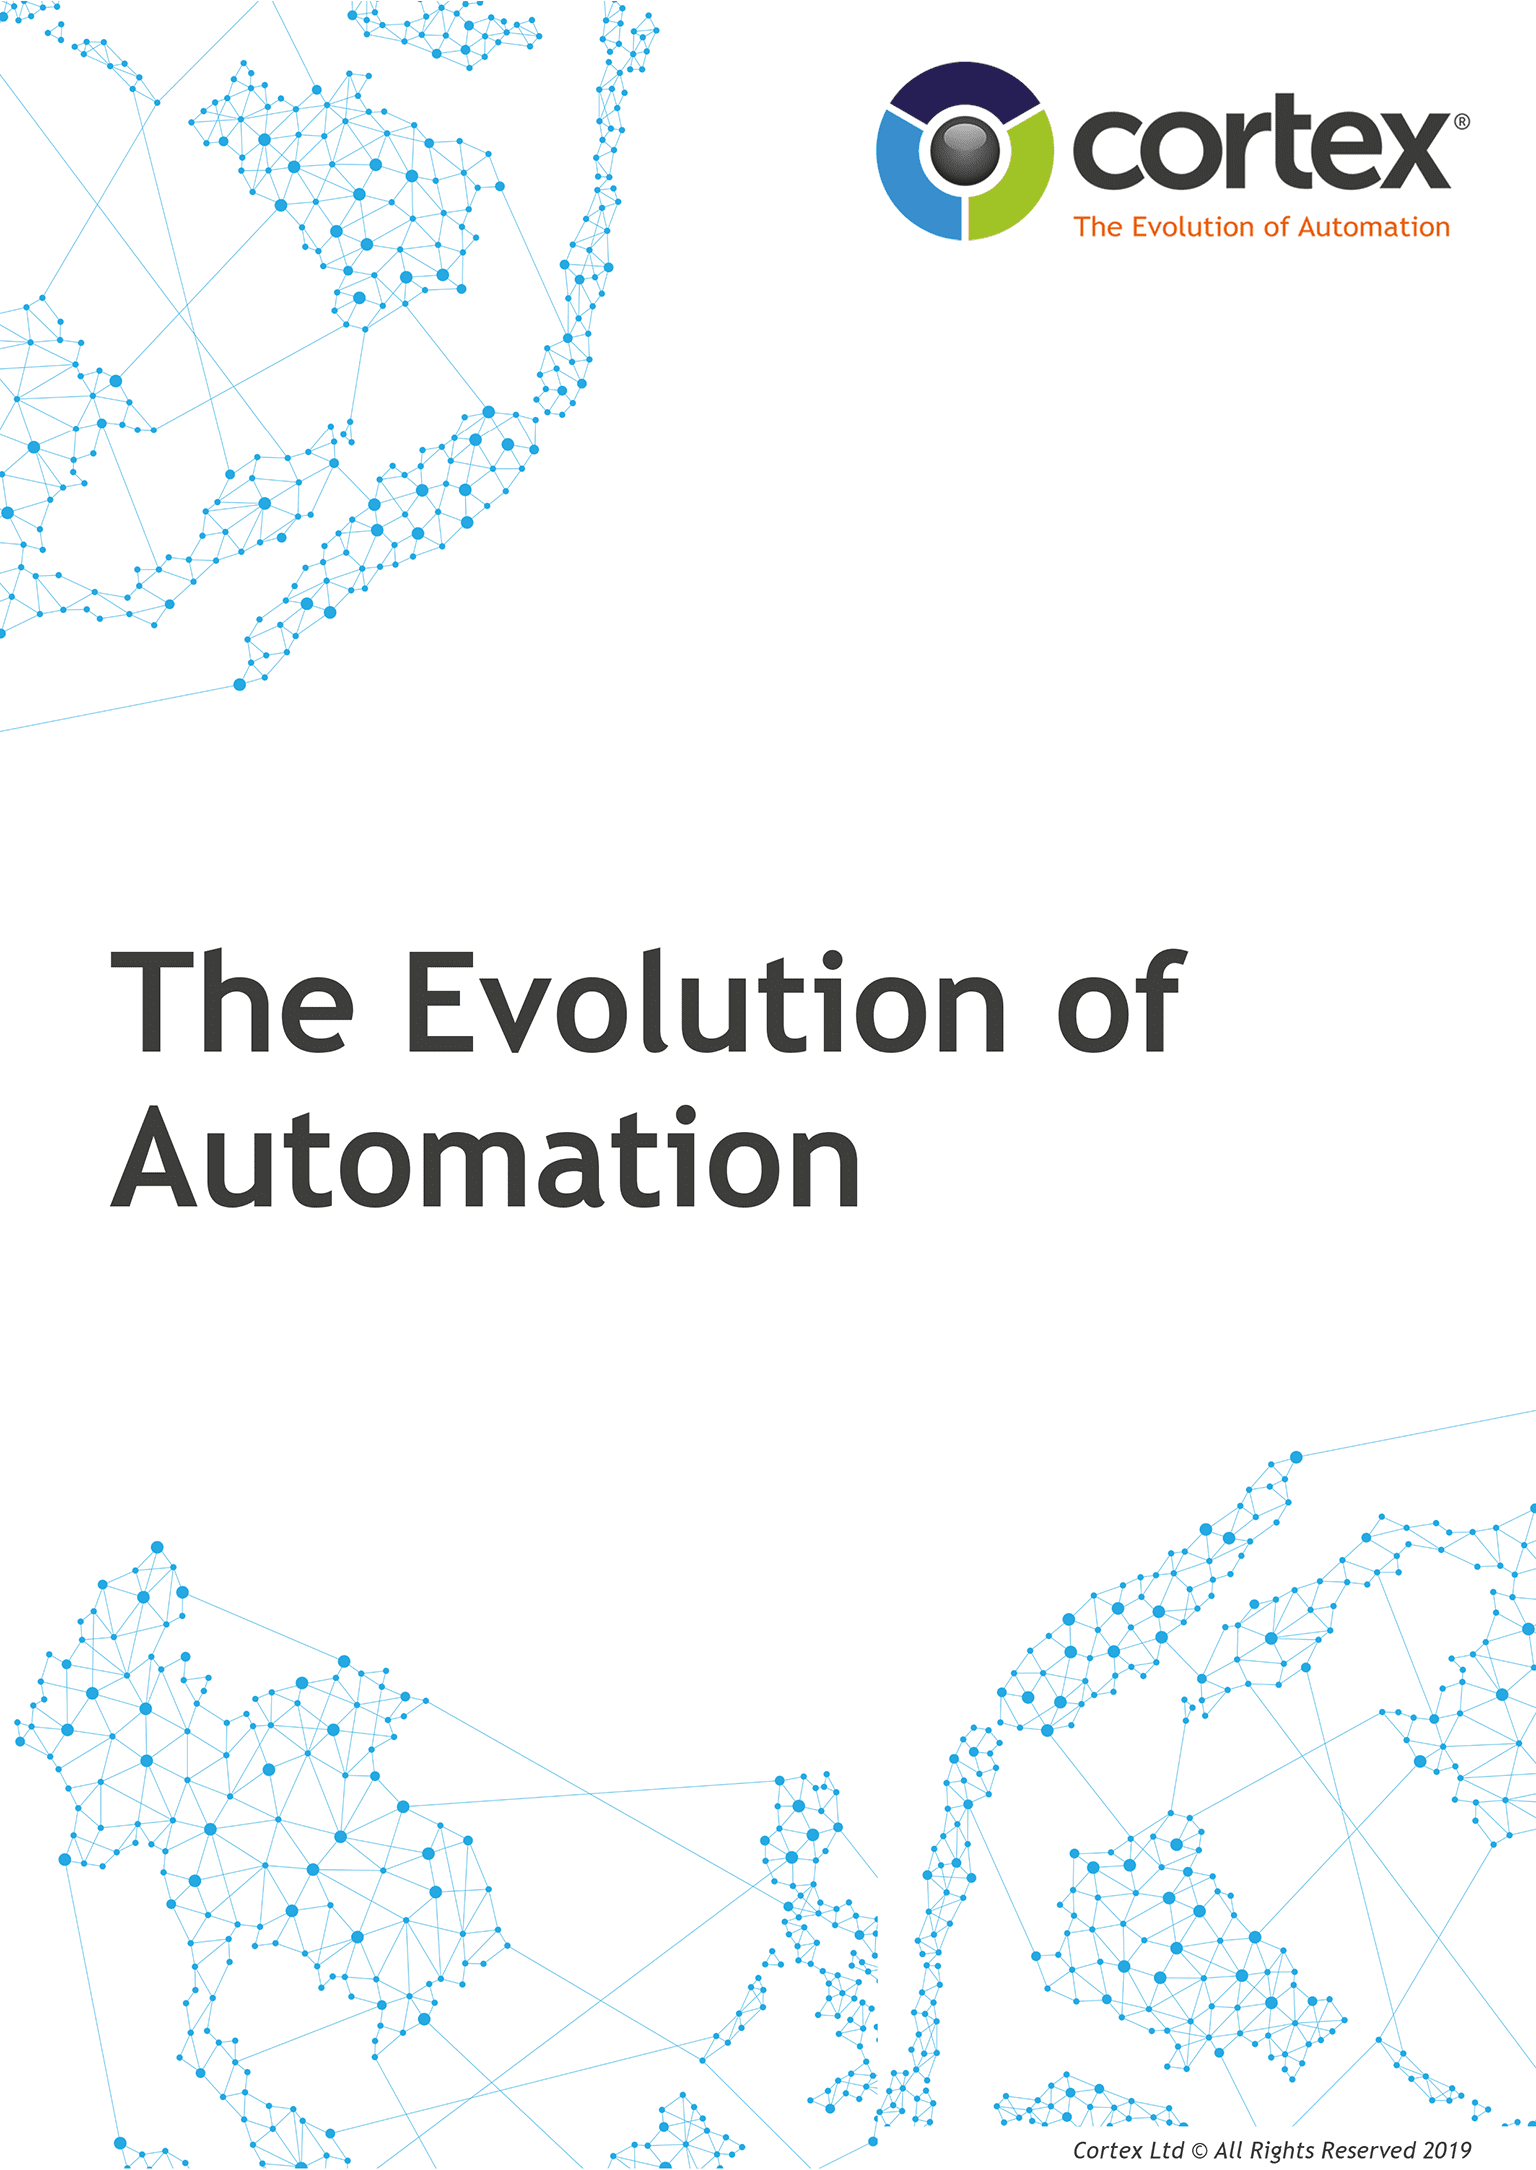 Cortex - The Evolution of Automation